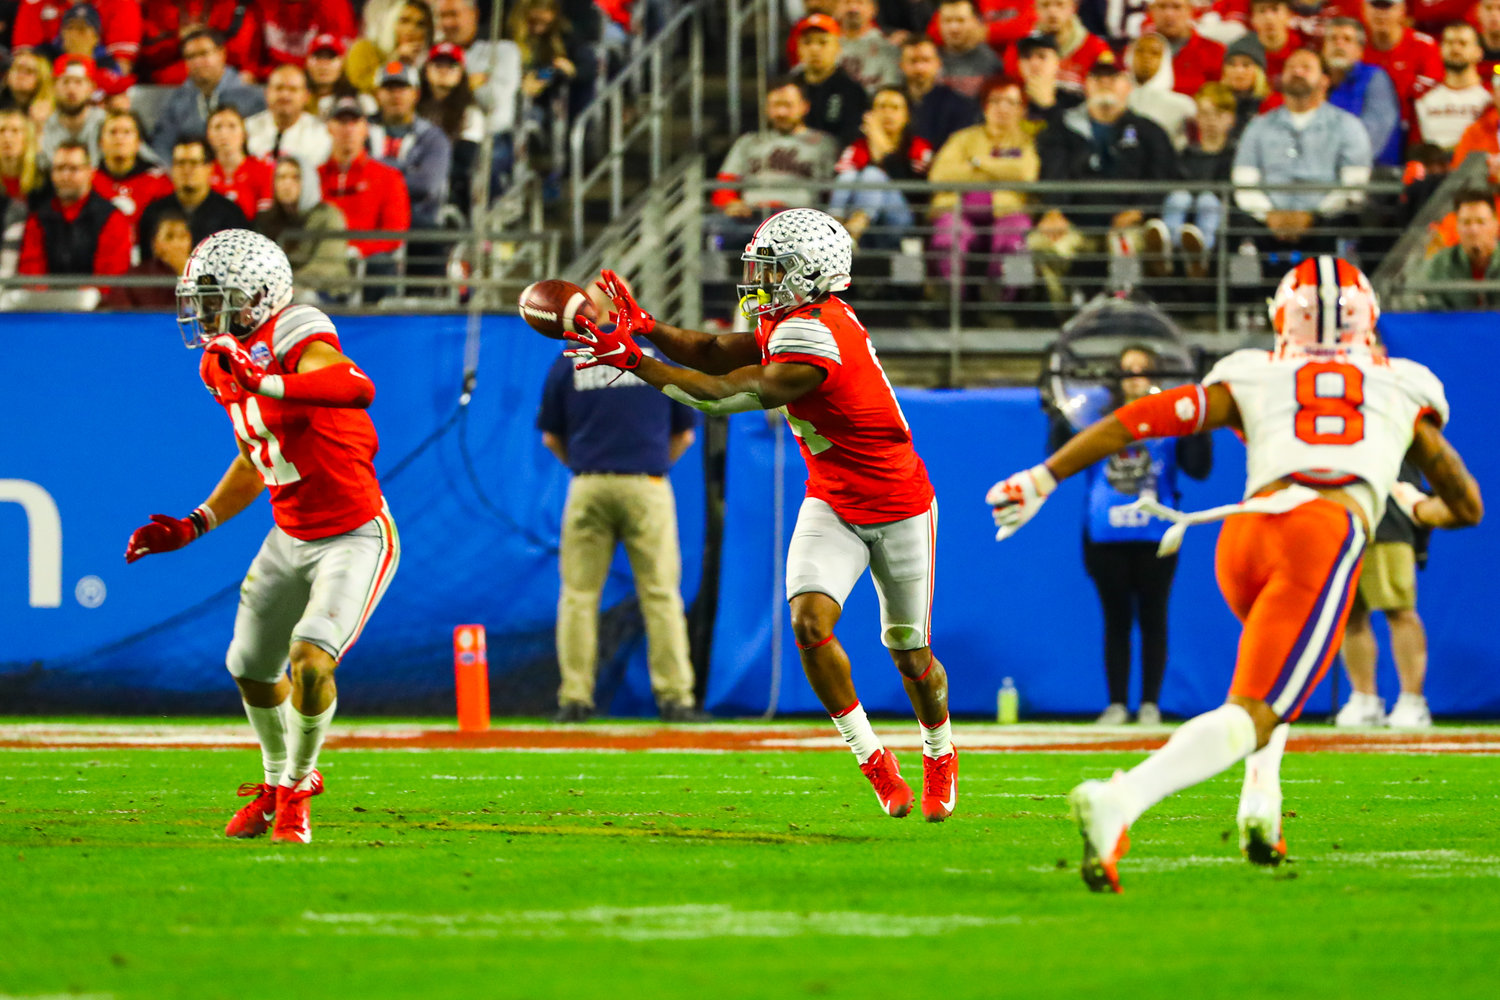 Clemson University defeated Ohio State in the Fiesta Bowl College Football Playoff semifinal game Dec. 28 in Glendale.